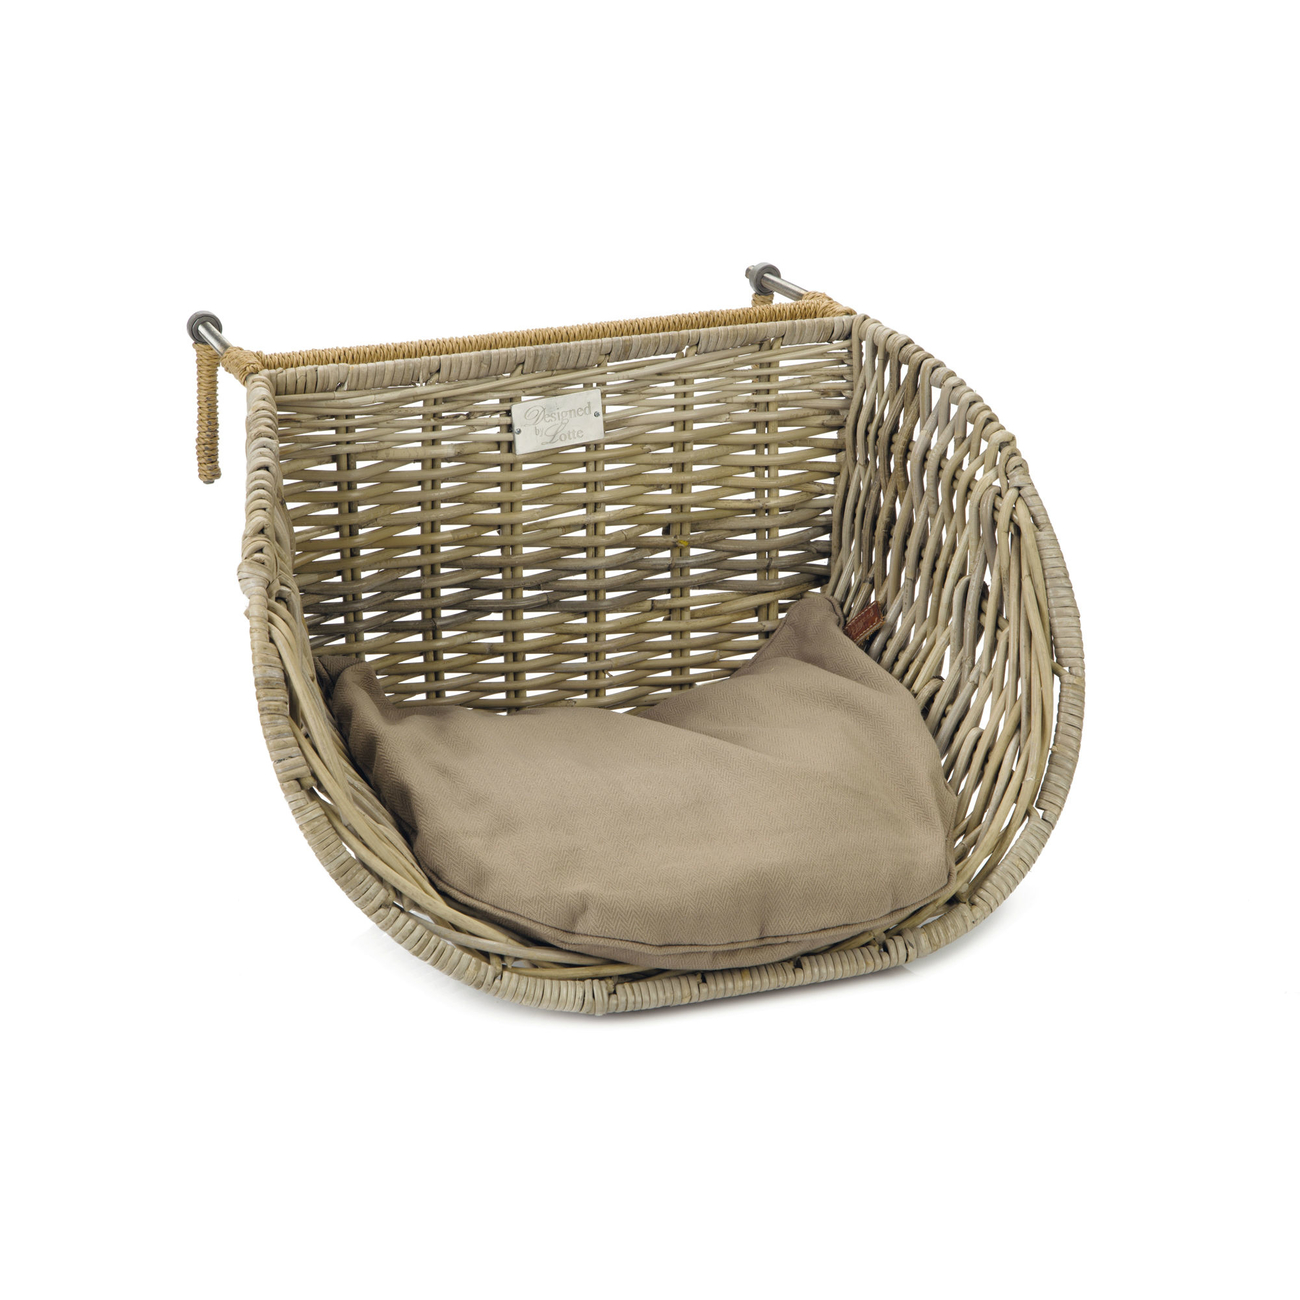 Designed By Lotte Katzen Heizungsliege Rattan Koozy Designed By Lotte